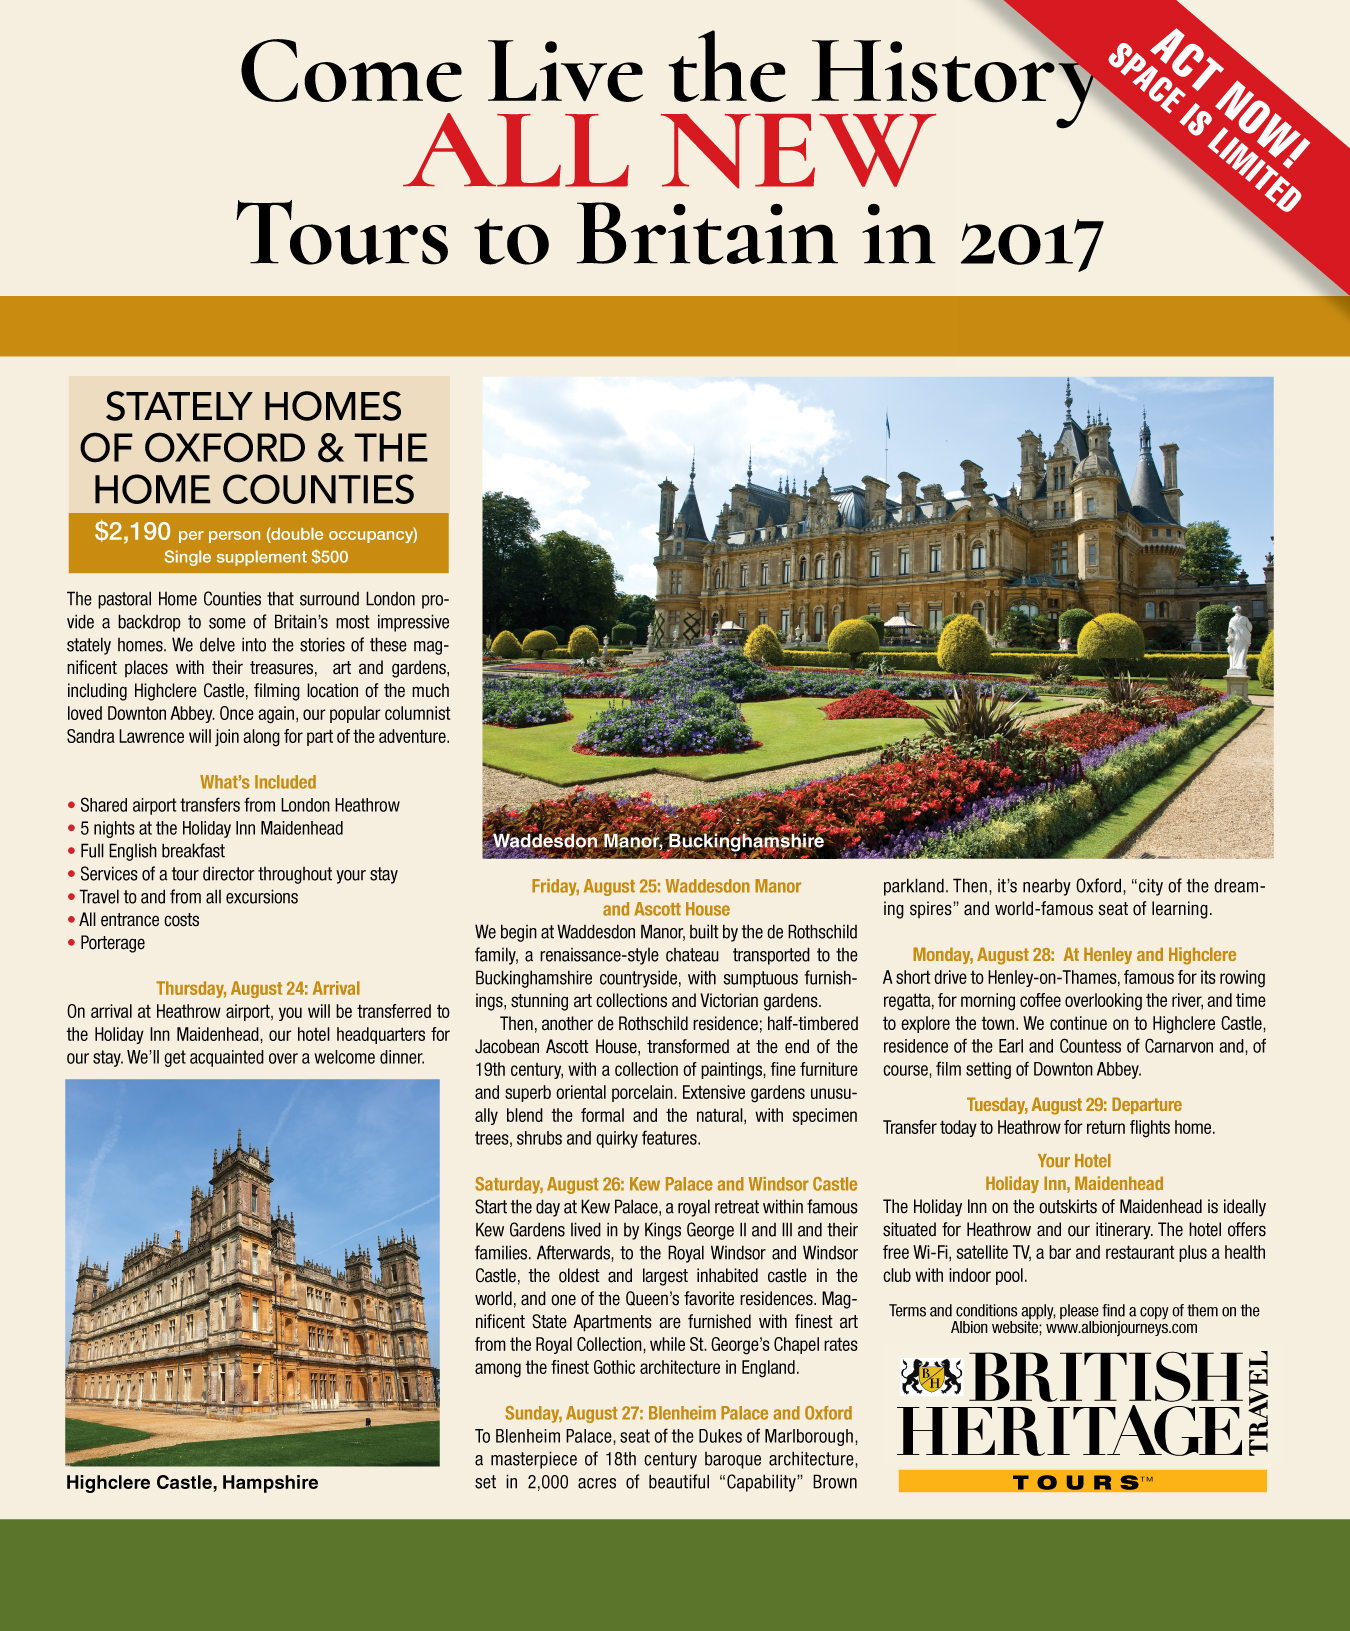 034-BHT-Jul-Aug2016-TOUR AD